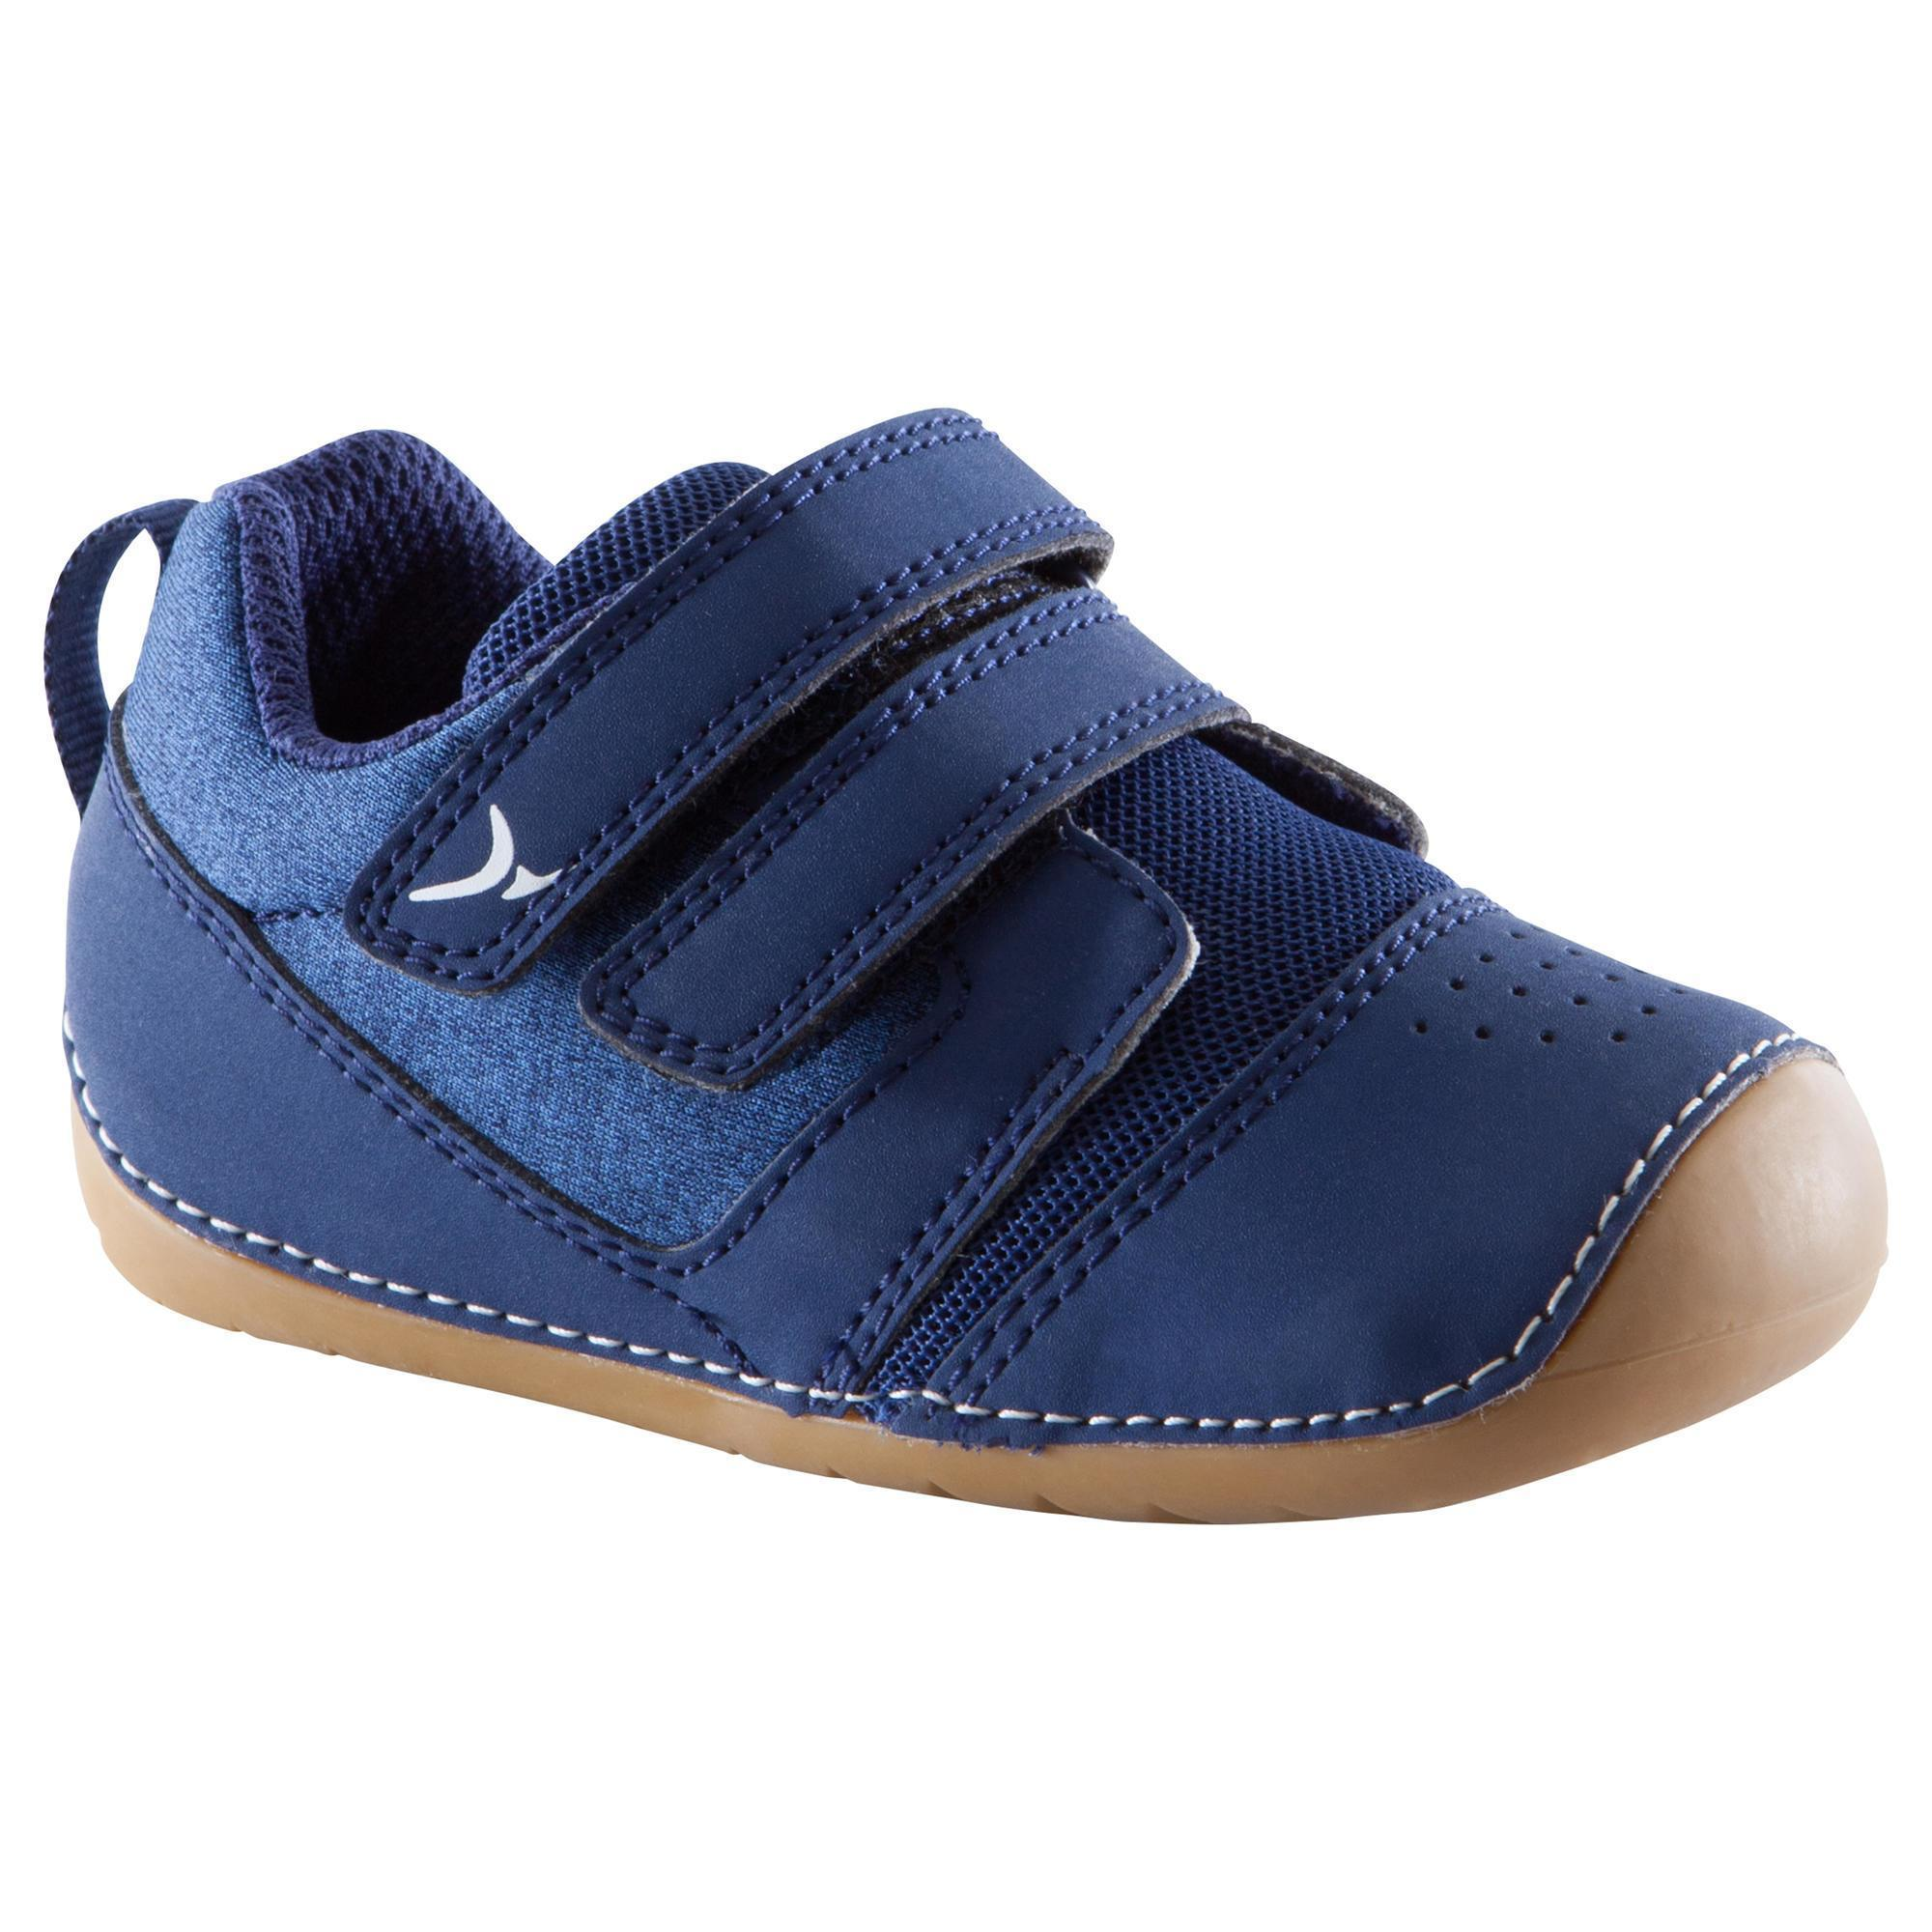 Kids' Clothing, Shoes & Accs Dependable Boys Canvas Shoes Trainers Baby Boy Real Leather Insoles Size 3.5-7 Uk Toddler Baby Shoes